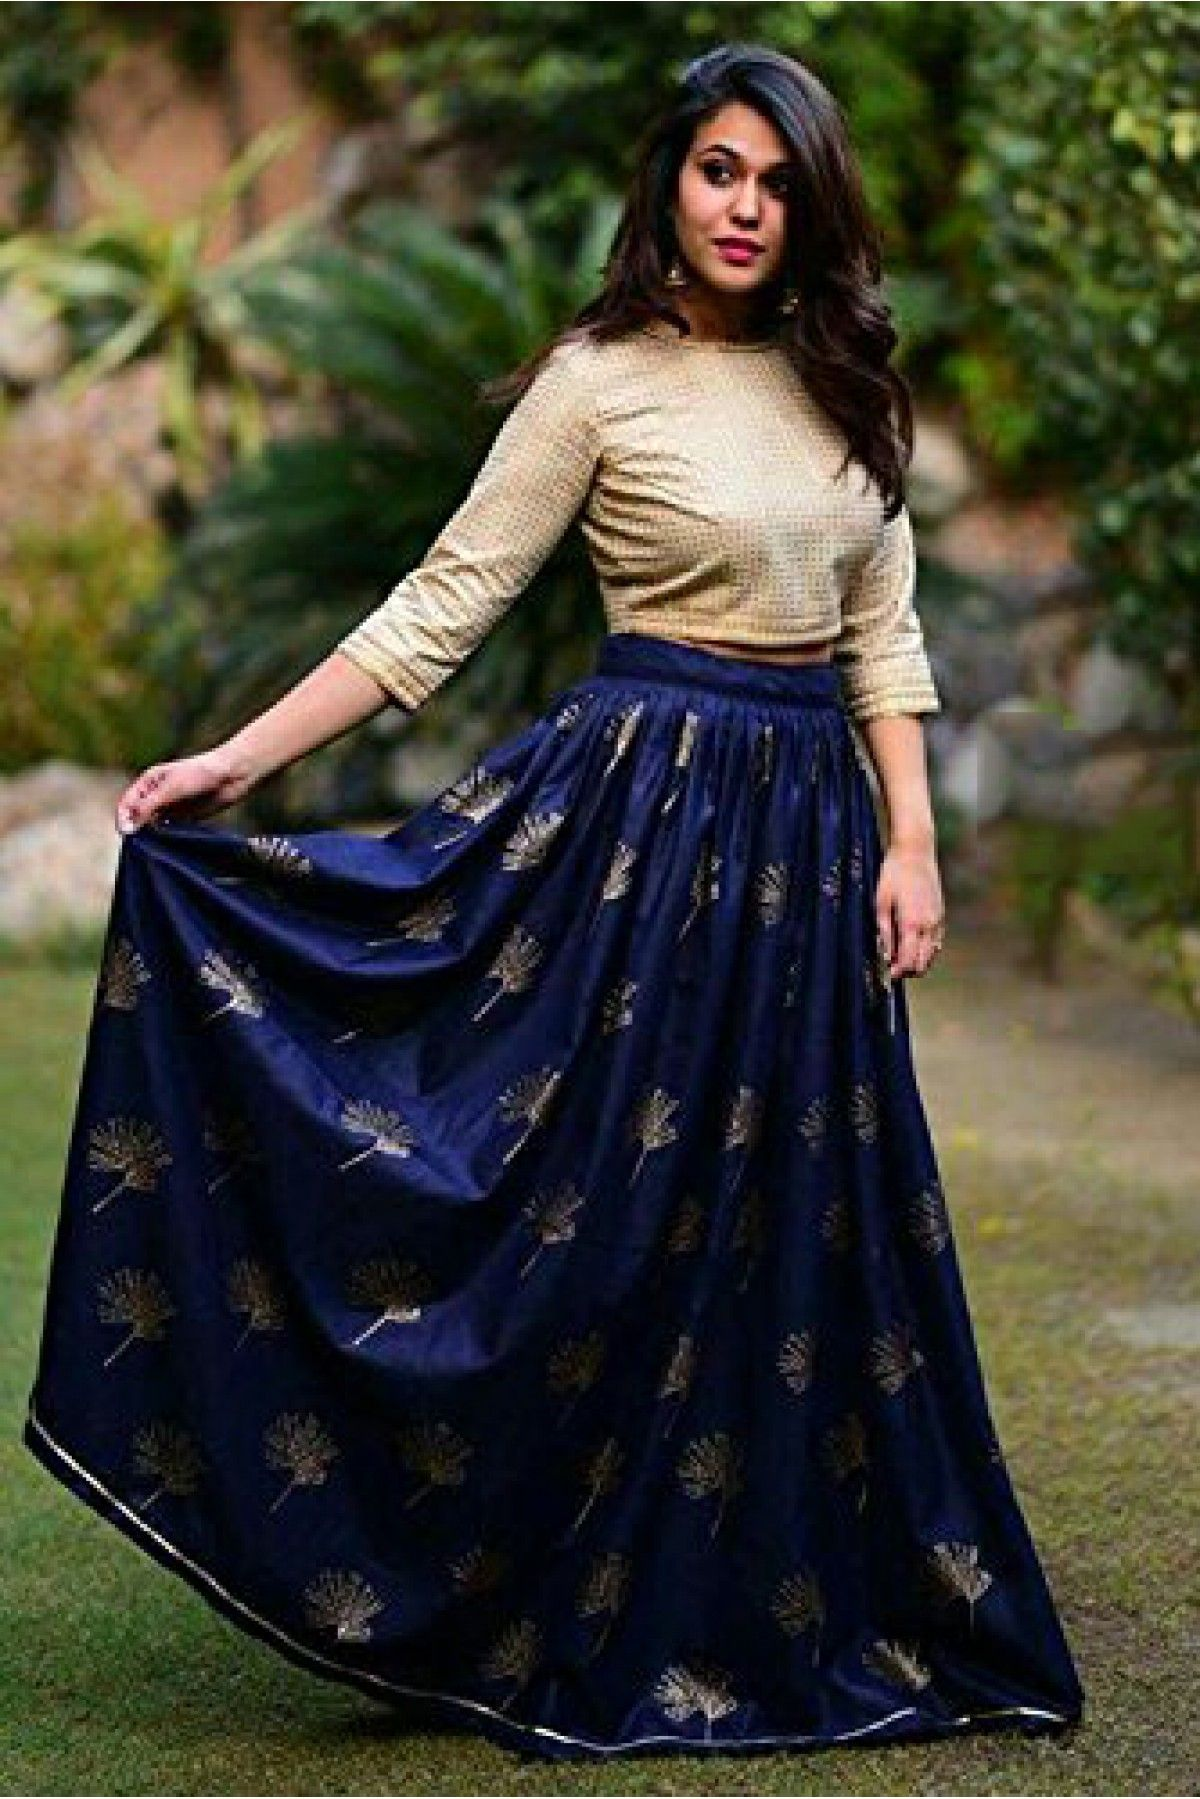 6b1de731e3f6a6 Navy Blue Colour Banglori Silk Fabric Party Wear Lehenga Choli Comes with  matching blouse. This Lehenga Choli Is crafted with Embroidery This Lehenga  Choli ...